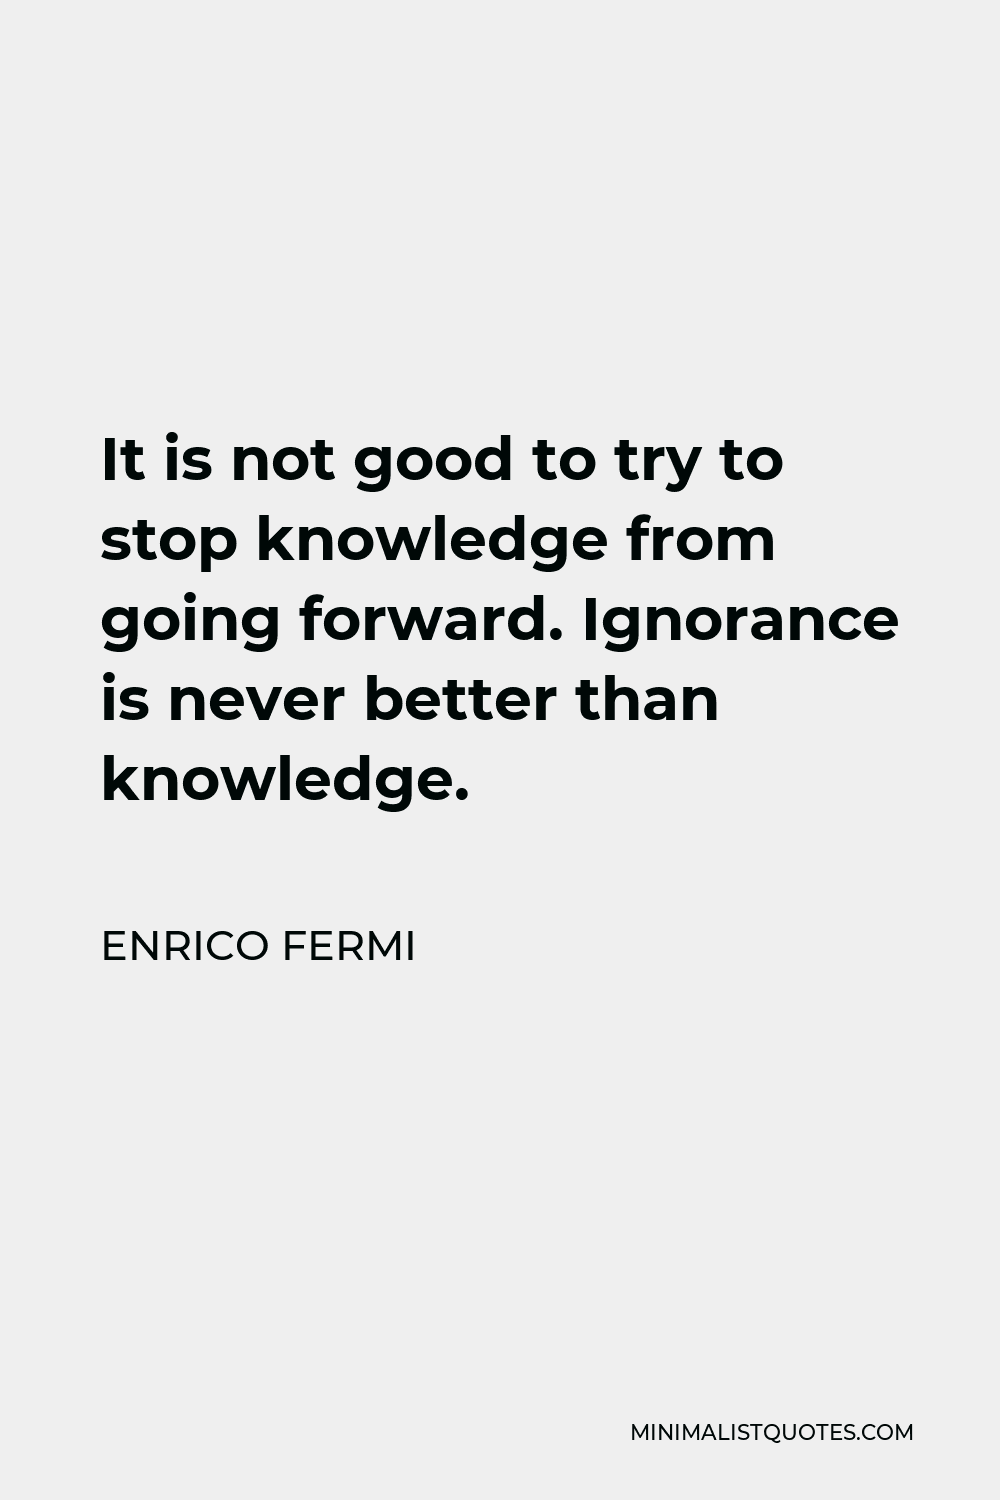 Enrico Fermi Quote - It is not good to try to stop knowledge from going forward. Ignorance is never better than knowledge.